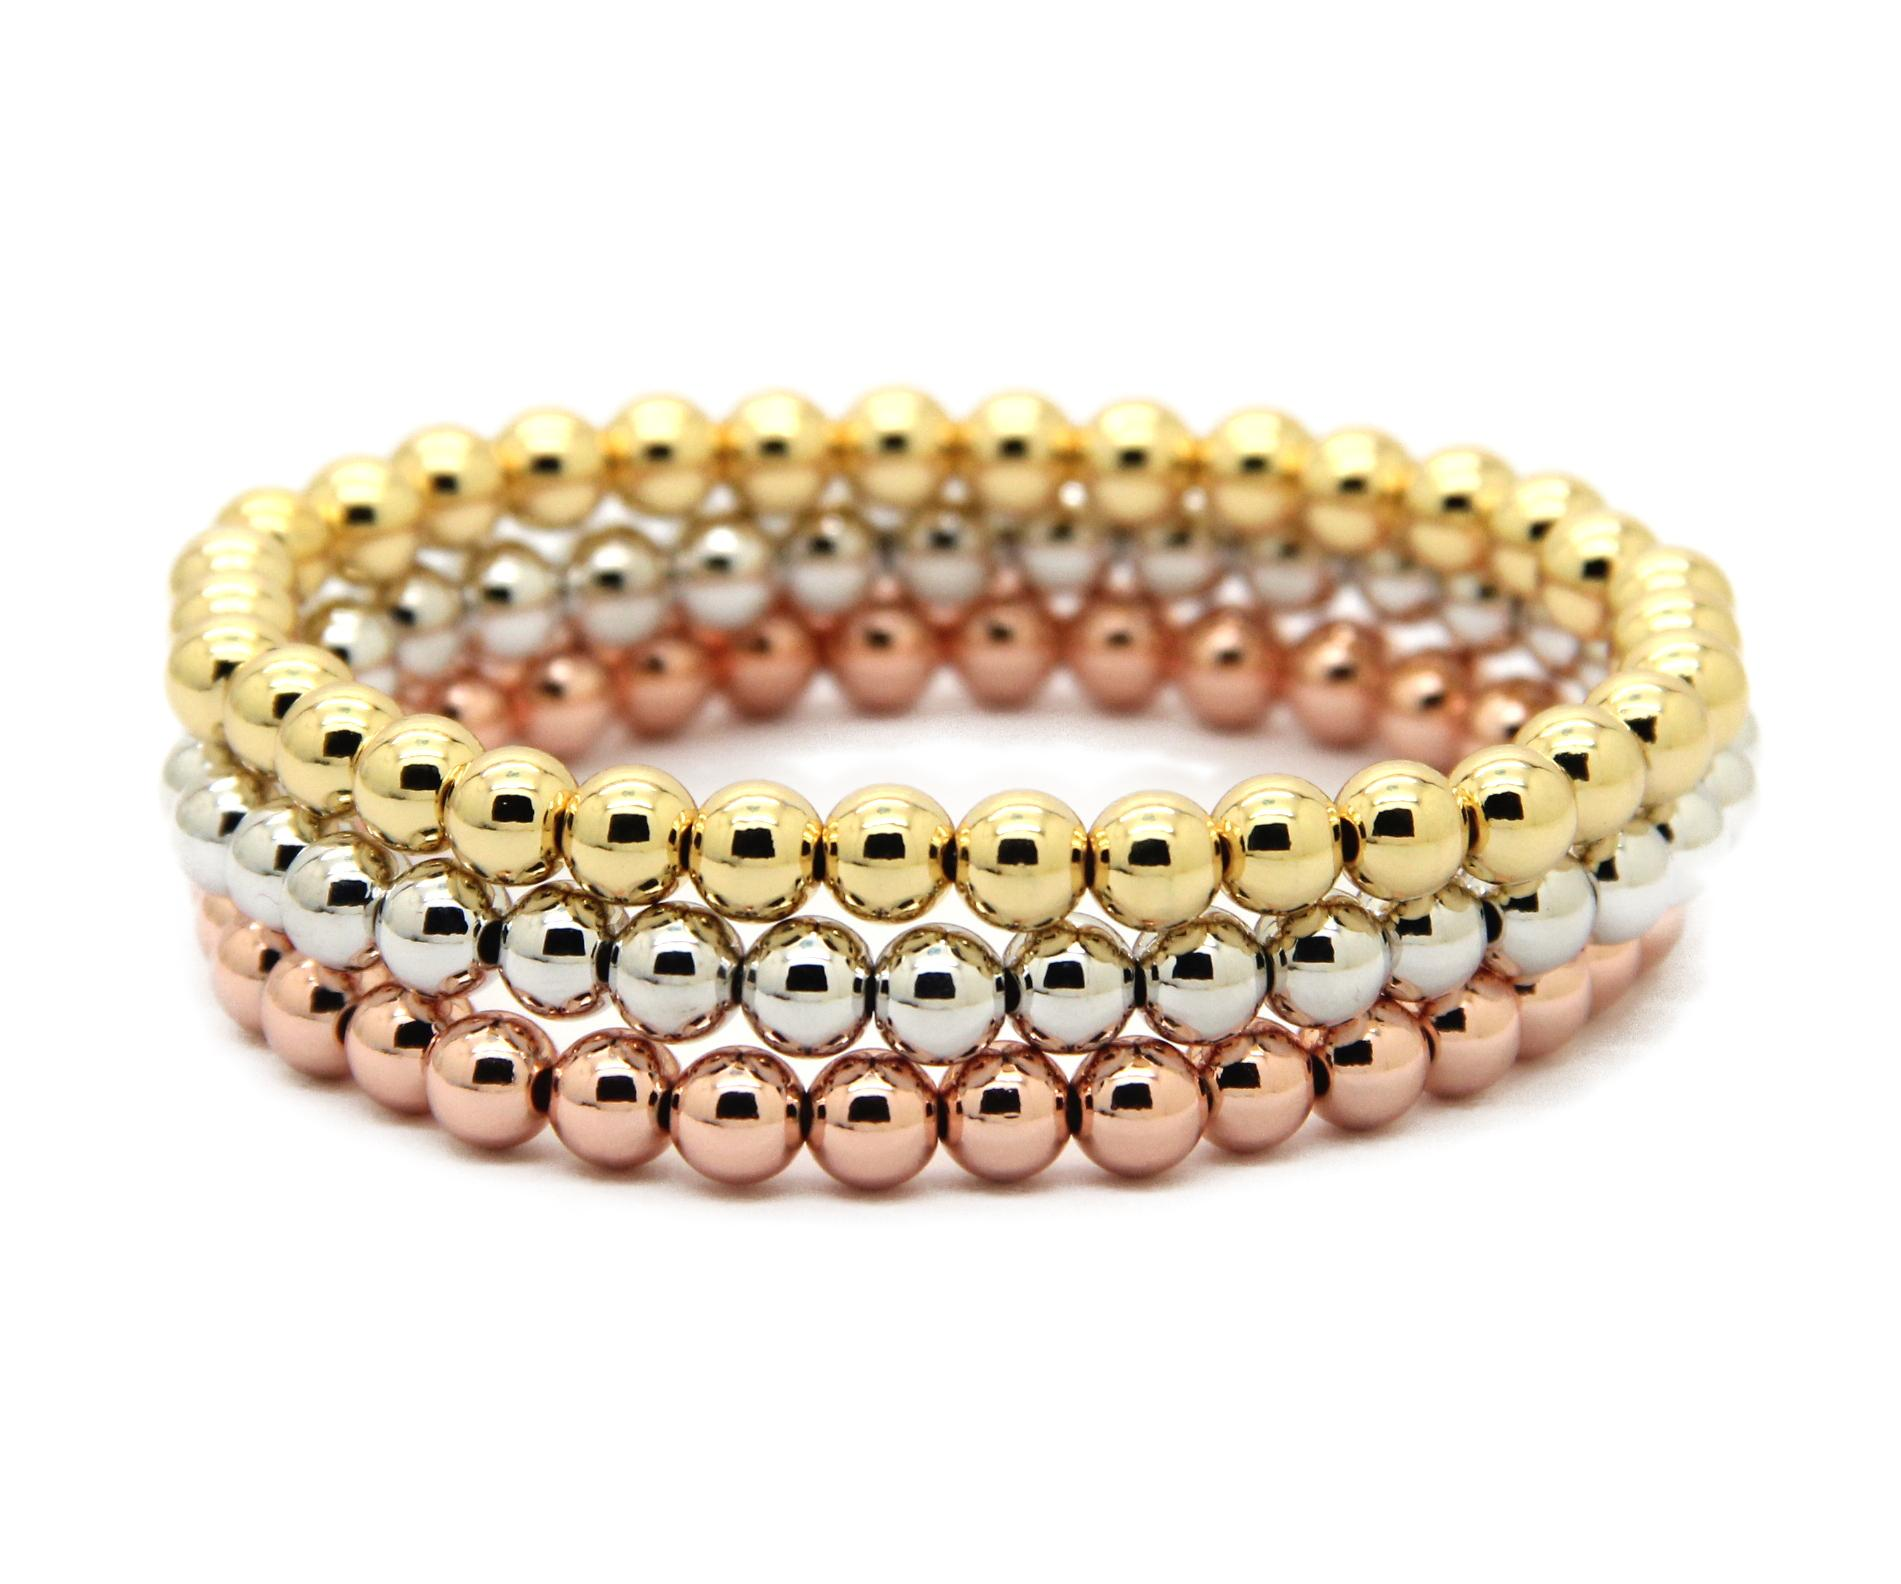 Wholesale 10pcs/lot 6mm 24K Real Gold, Rose Gold, Platinum Plated Round Copper Beads Men Woman Birthday Gifts Stretch Bracelet